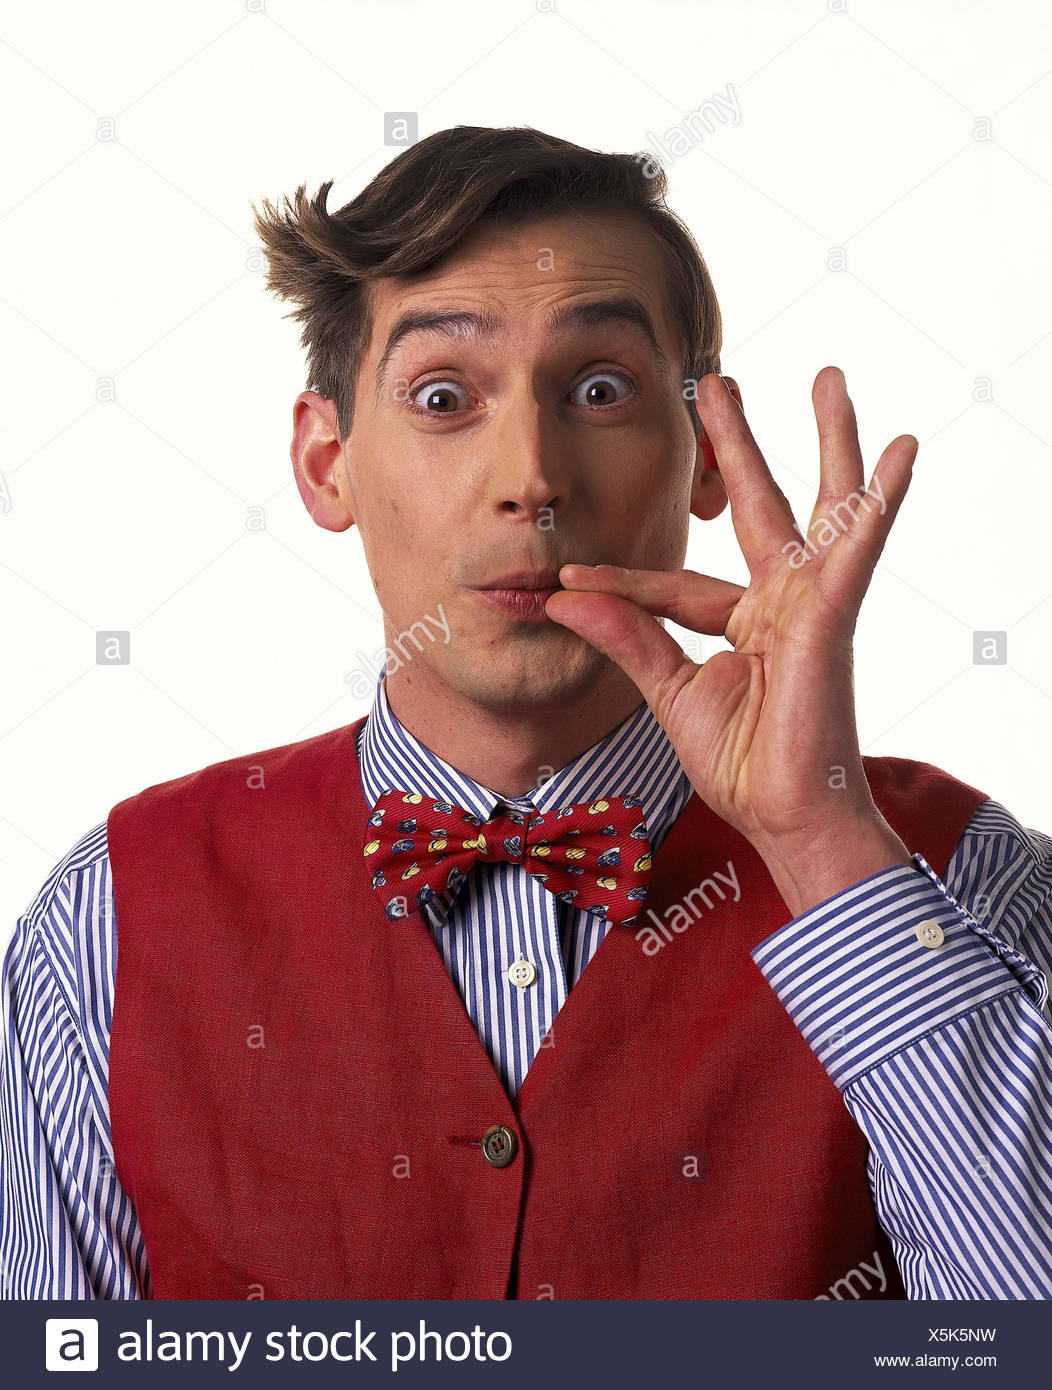 Man, young, page apex, mop hair, shirt, waistcoat, fly, gesture, perfectly, o.k., portrait, Men, studio, cut out, petty bourgeois, becomes stuck, gourmet, very well, exquisitely, very well, well, - Stock Image